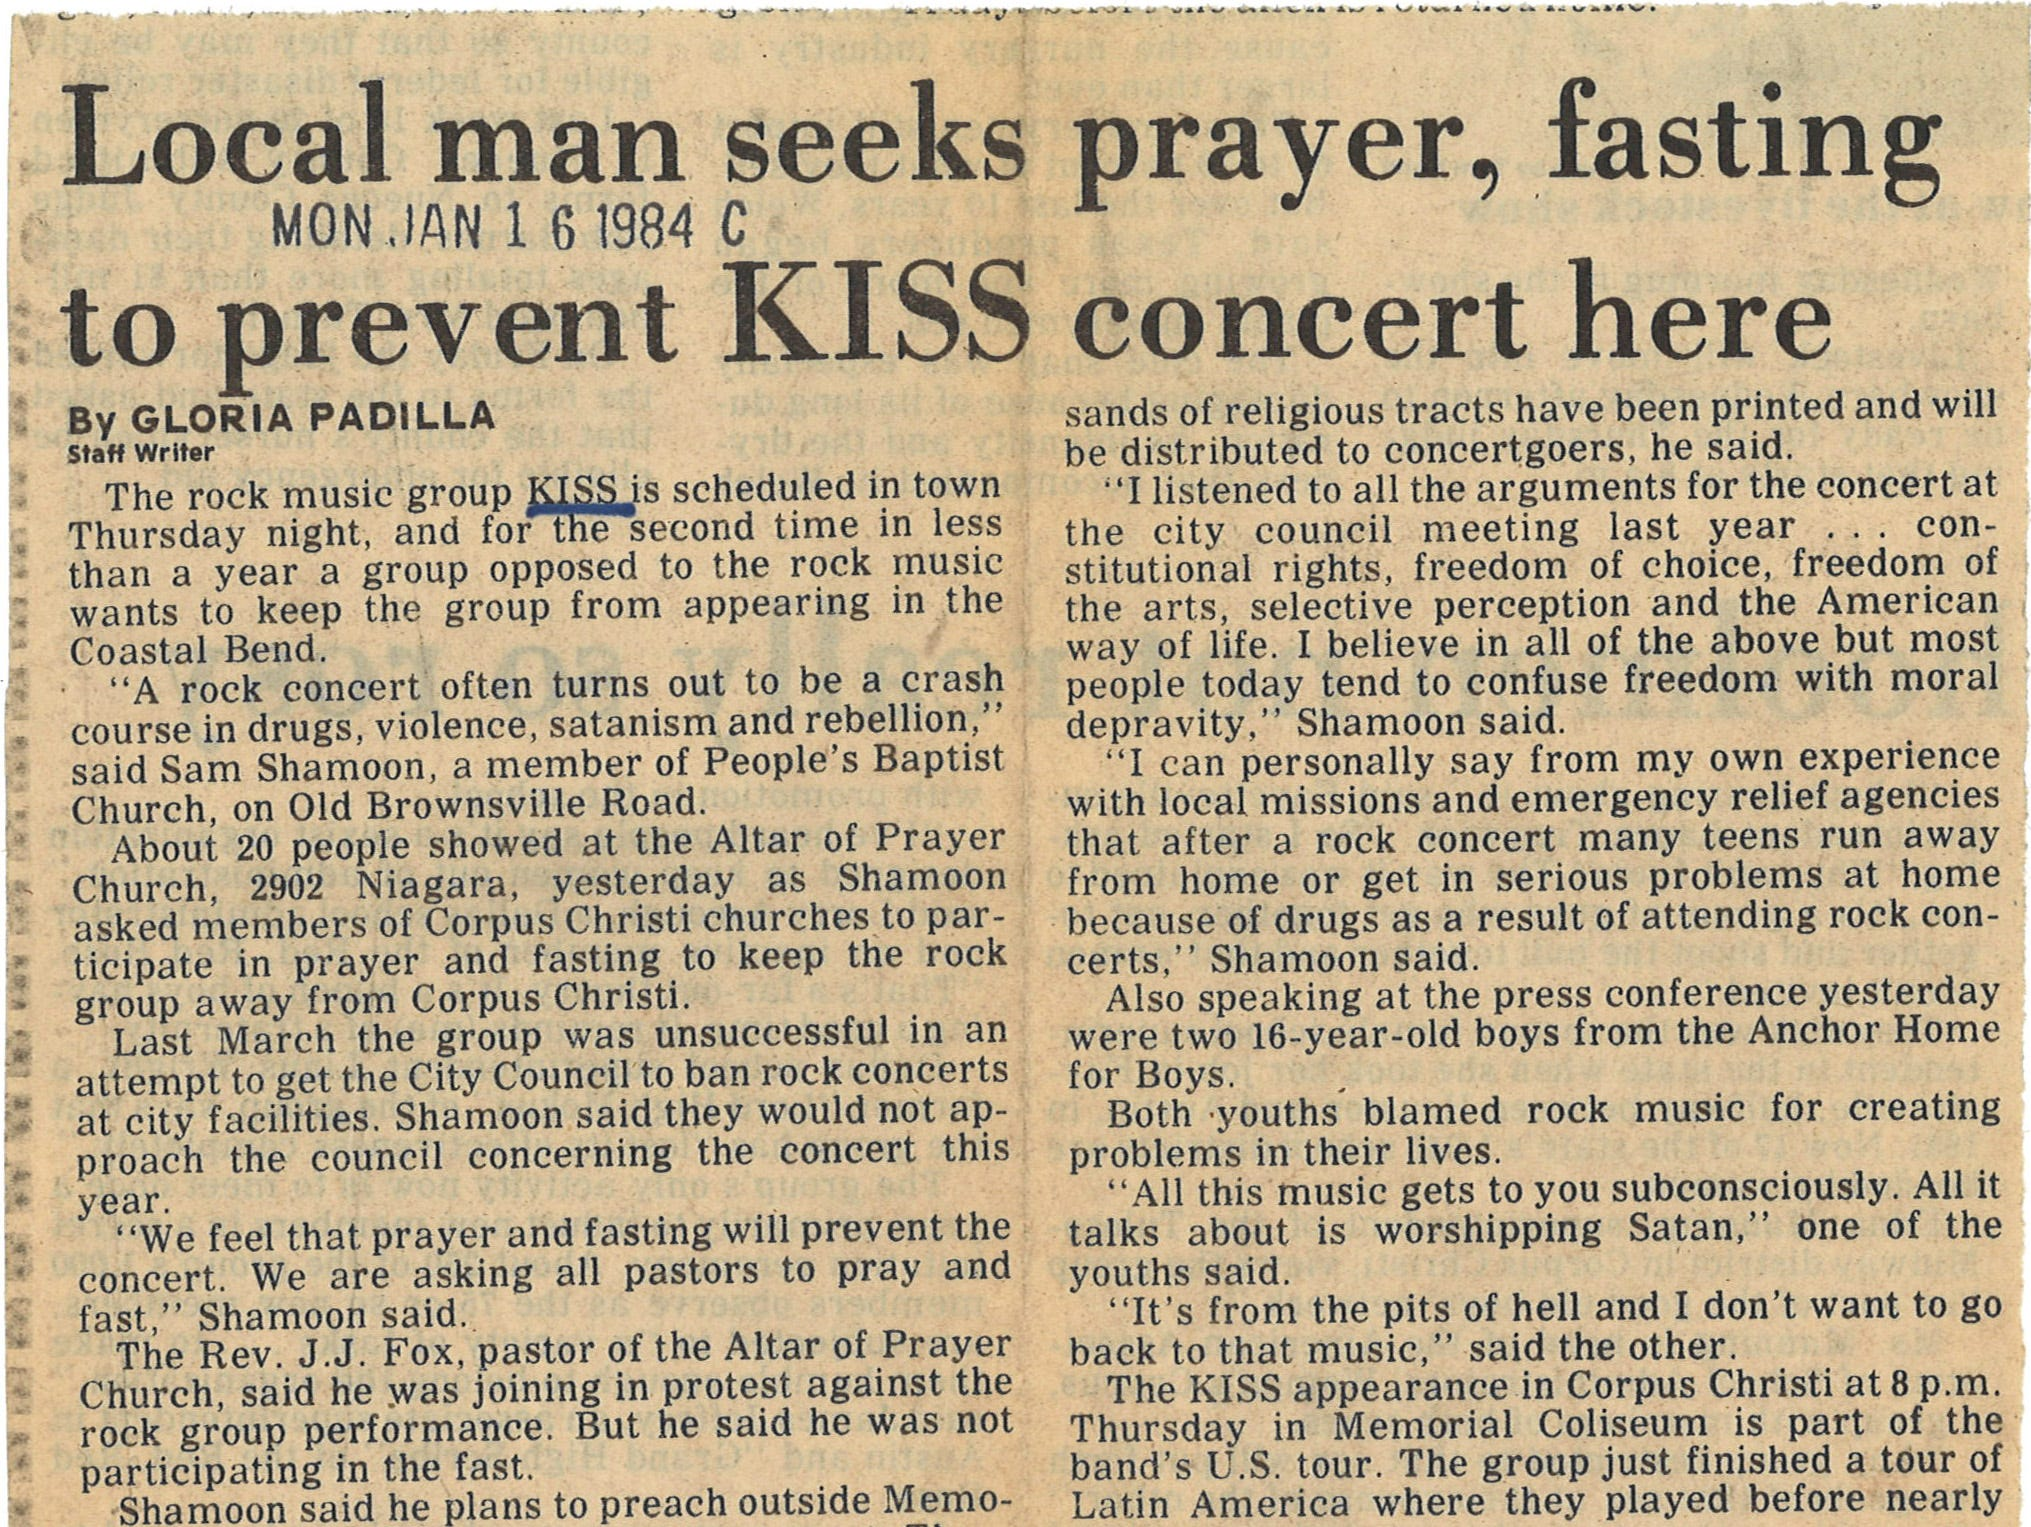 A clipping from the Corpus Christi Caller-Times on Jan. 16, 1984 about a local man protesting KISS concert.